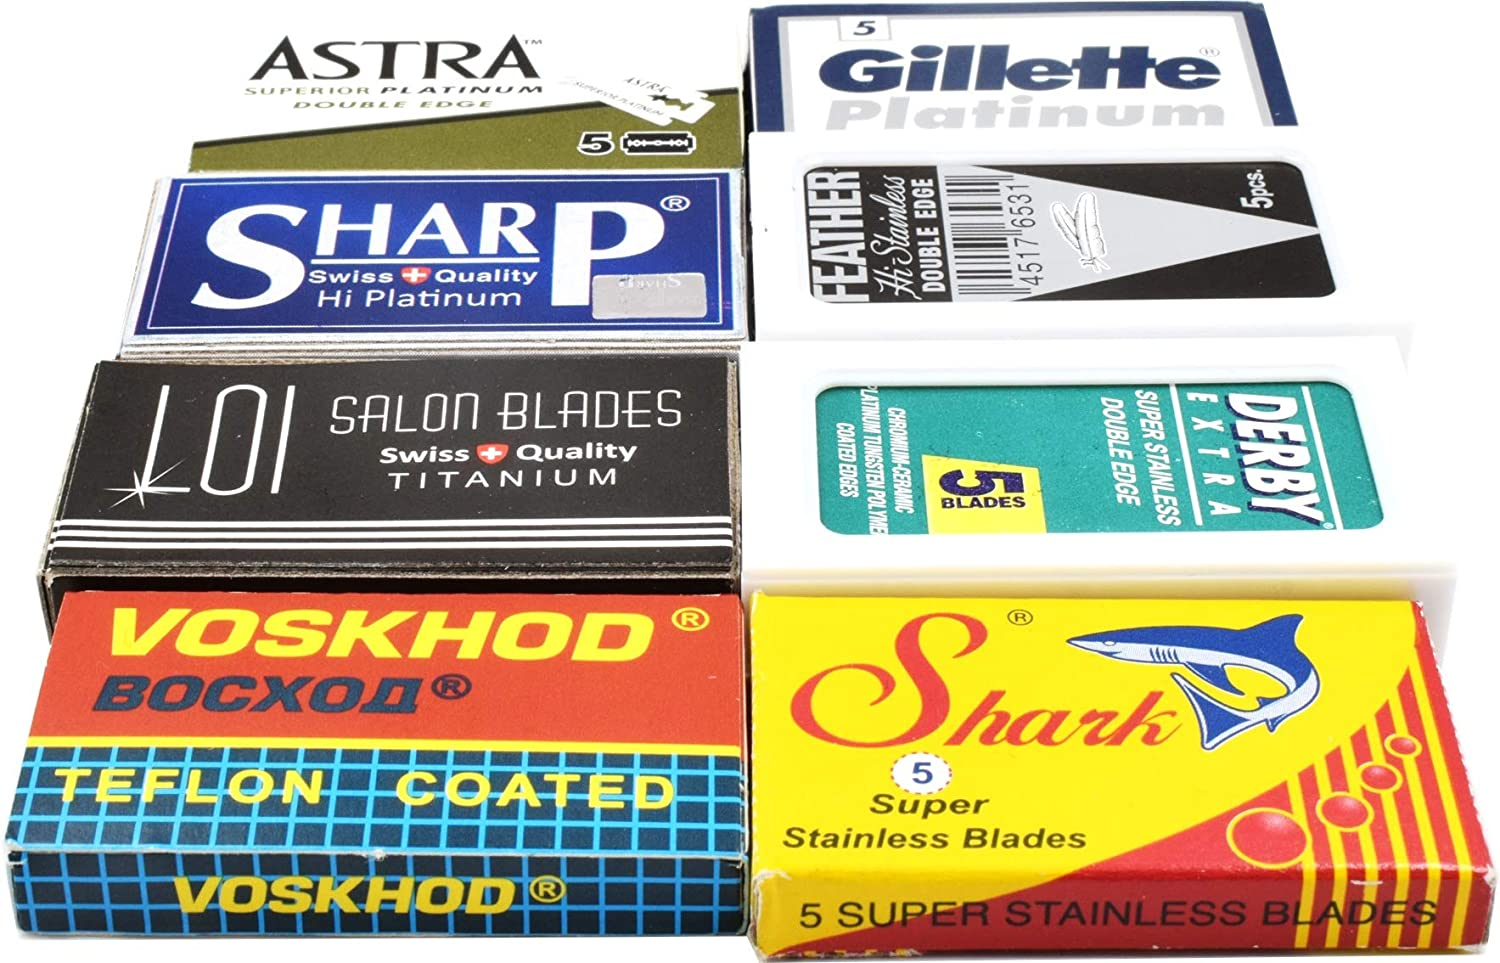 40 Excellent Quality Double Edge Razor Blades Sampler (8 different brands)